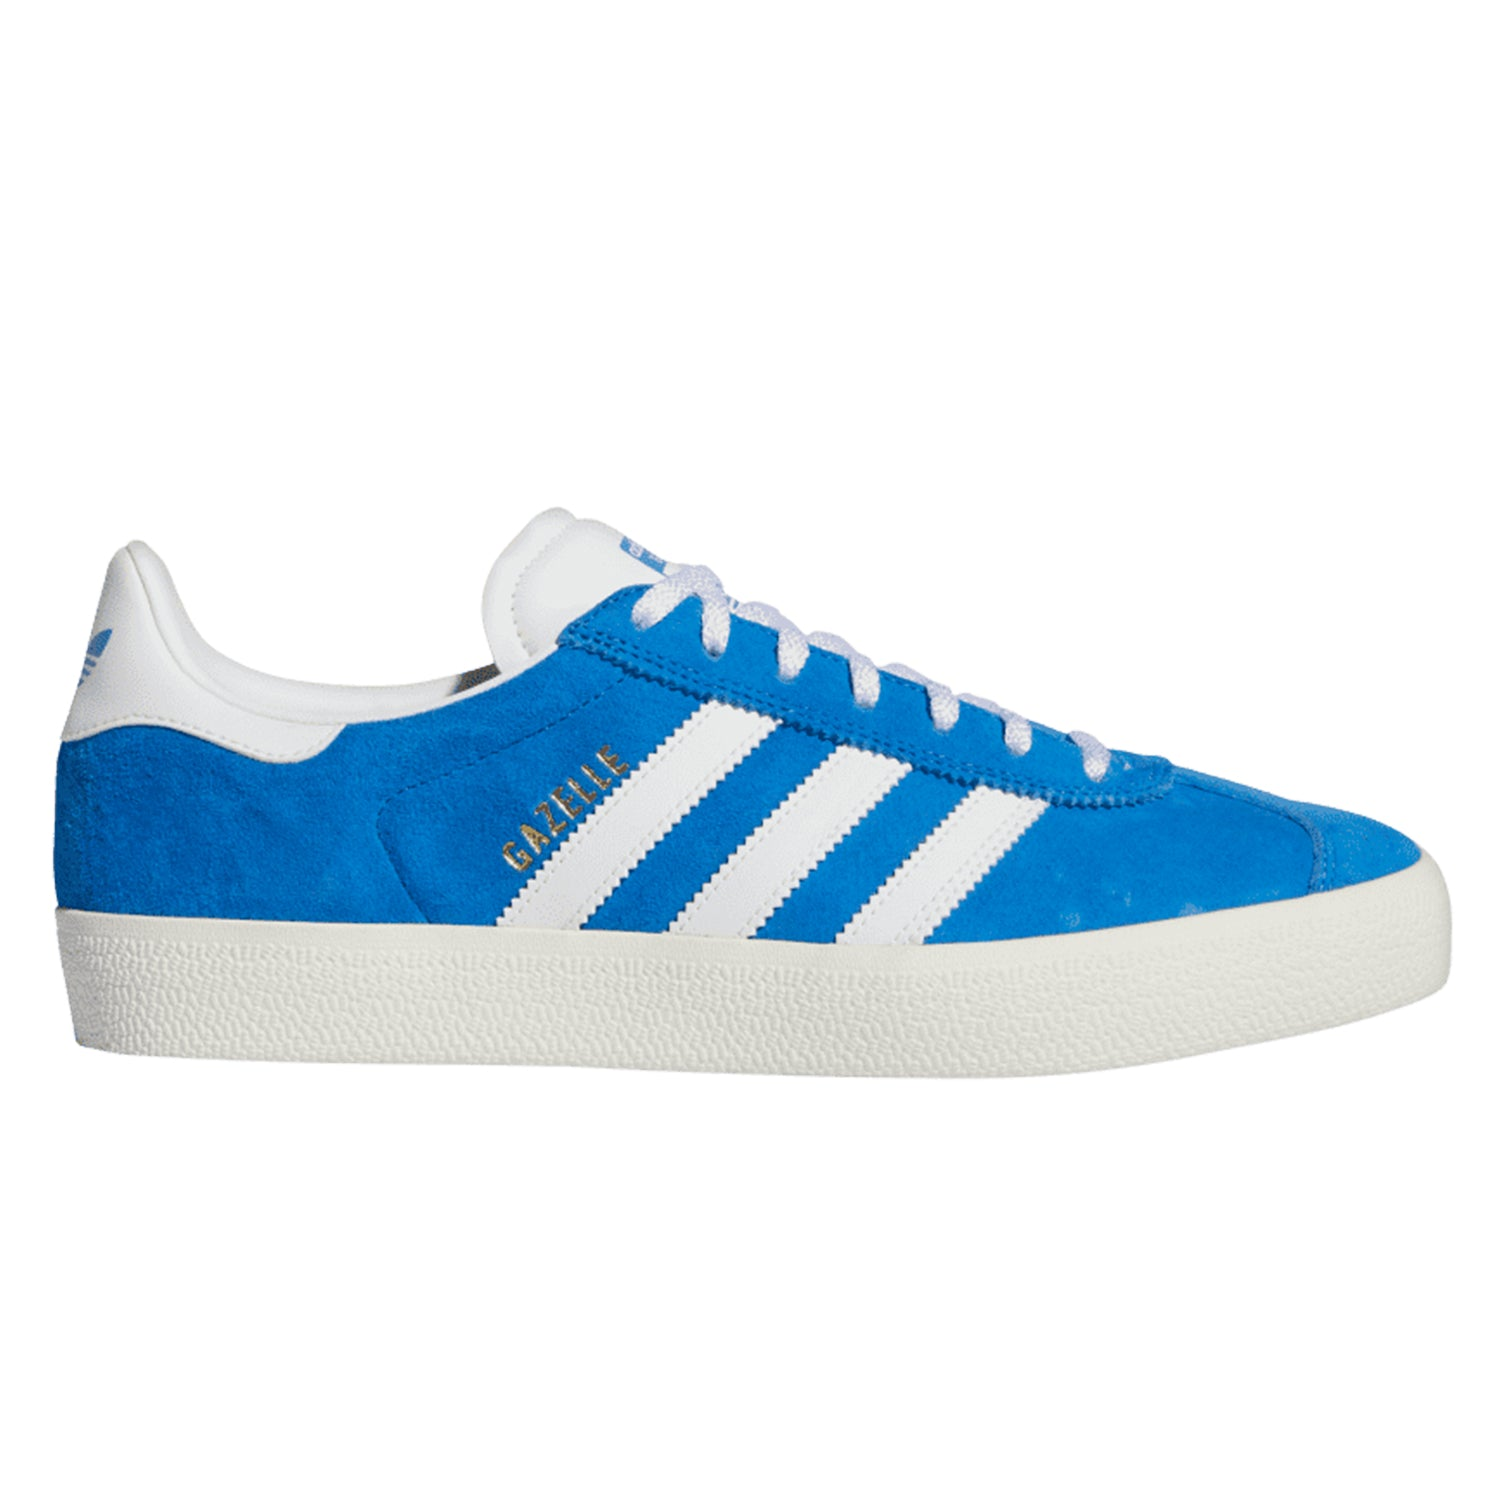 Adidas Gazelle ADV Bluebird/Chalk White